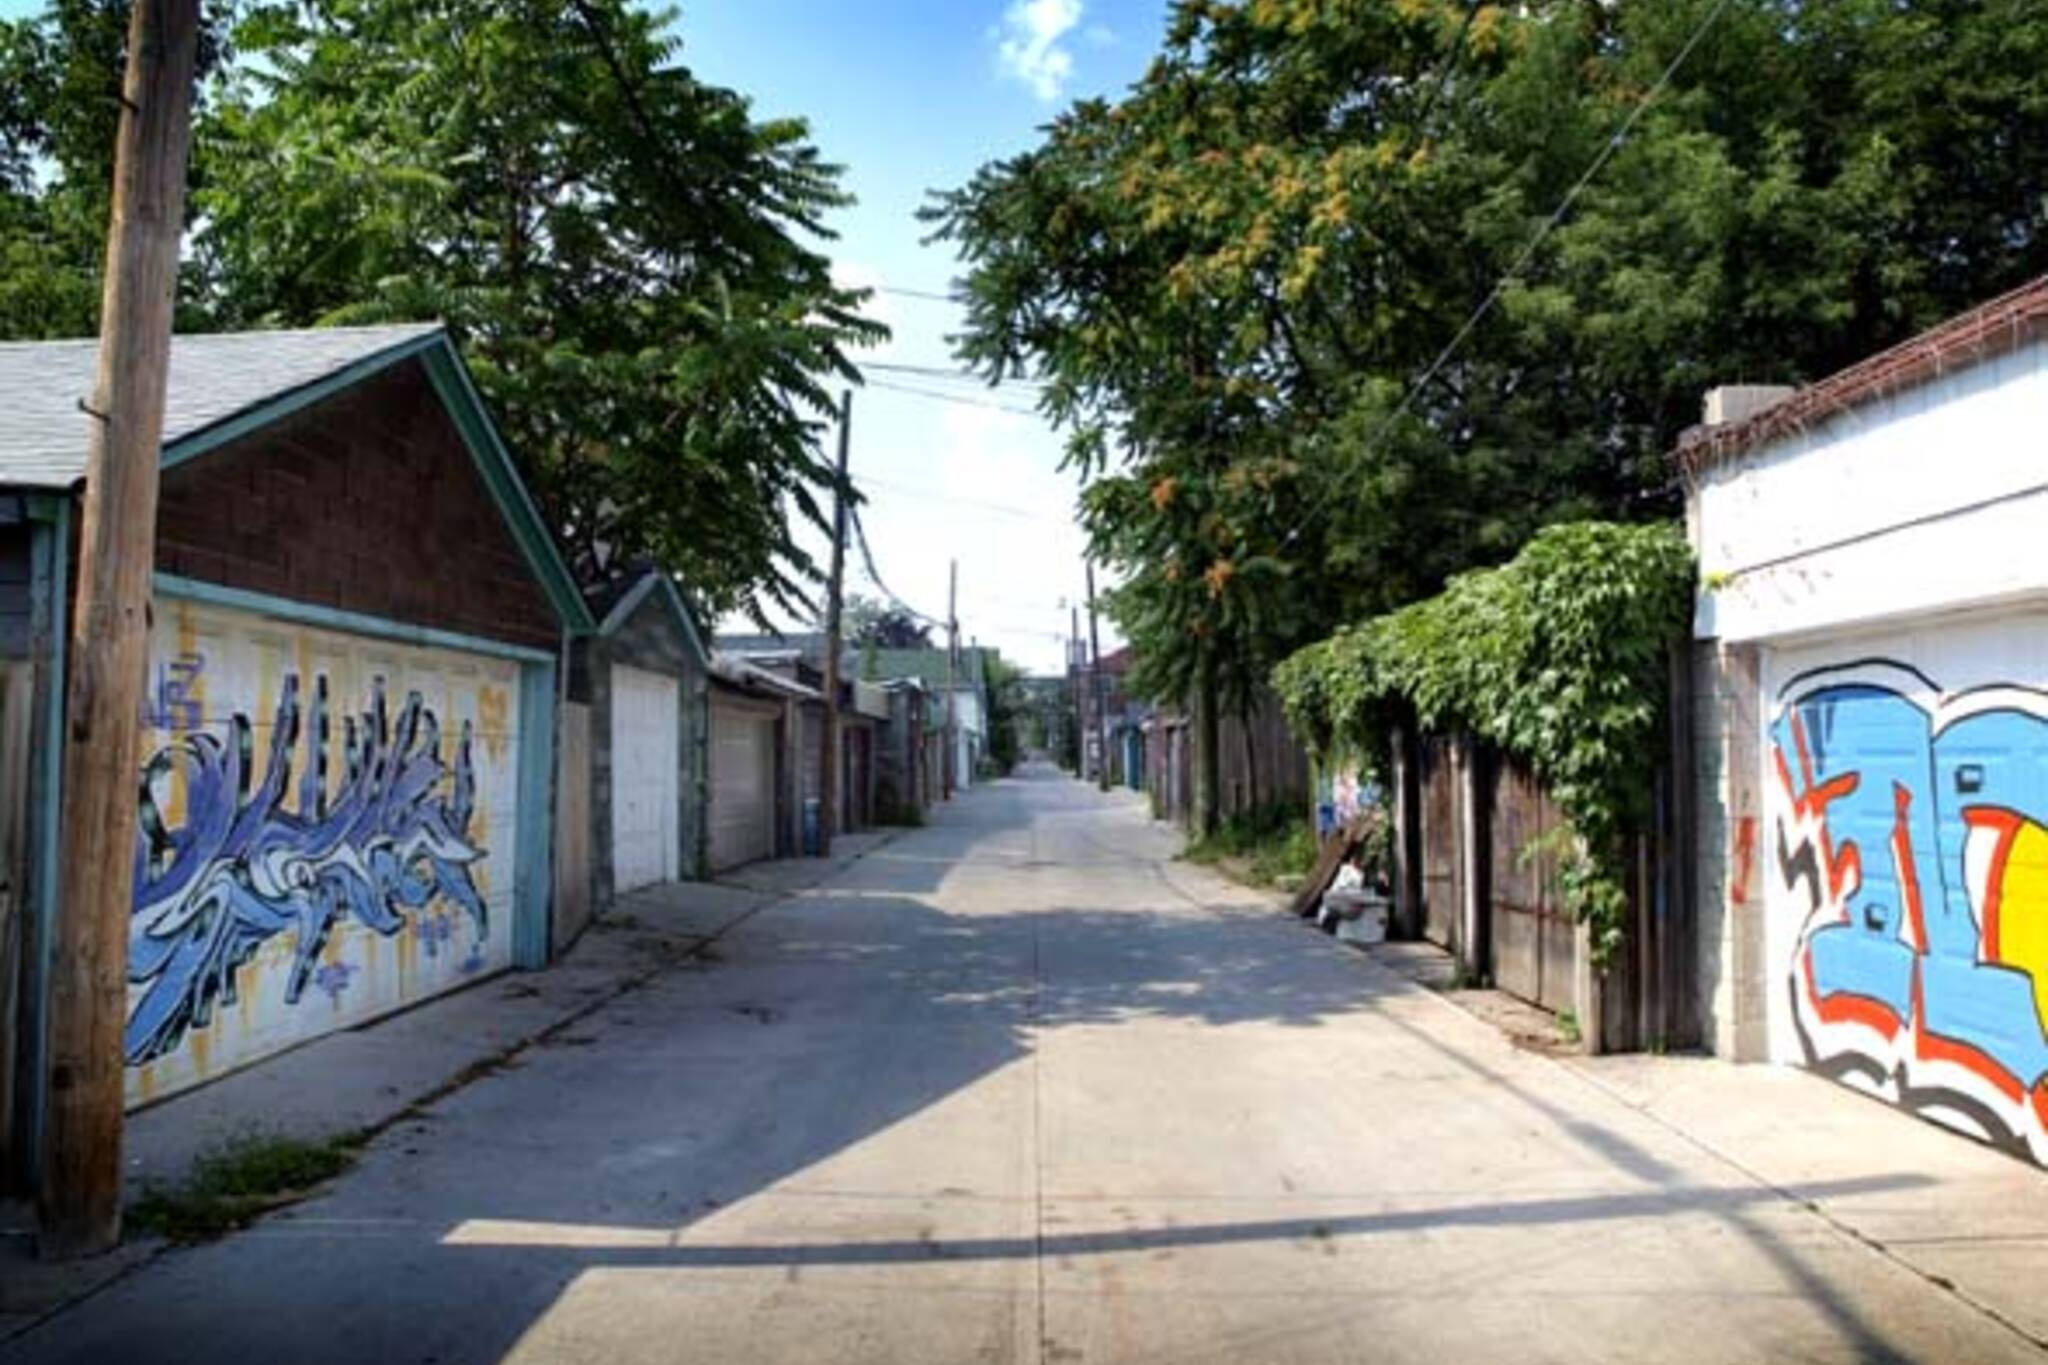 A typical downtown laneway